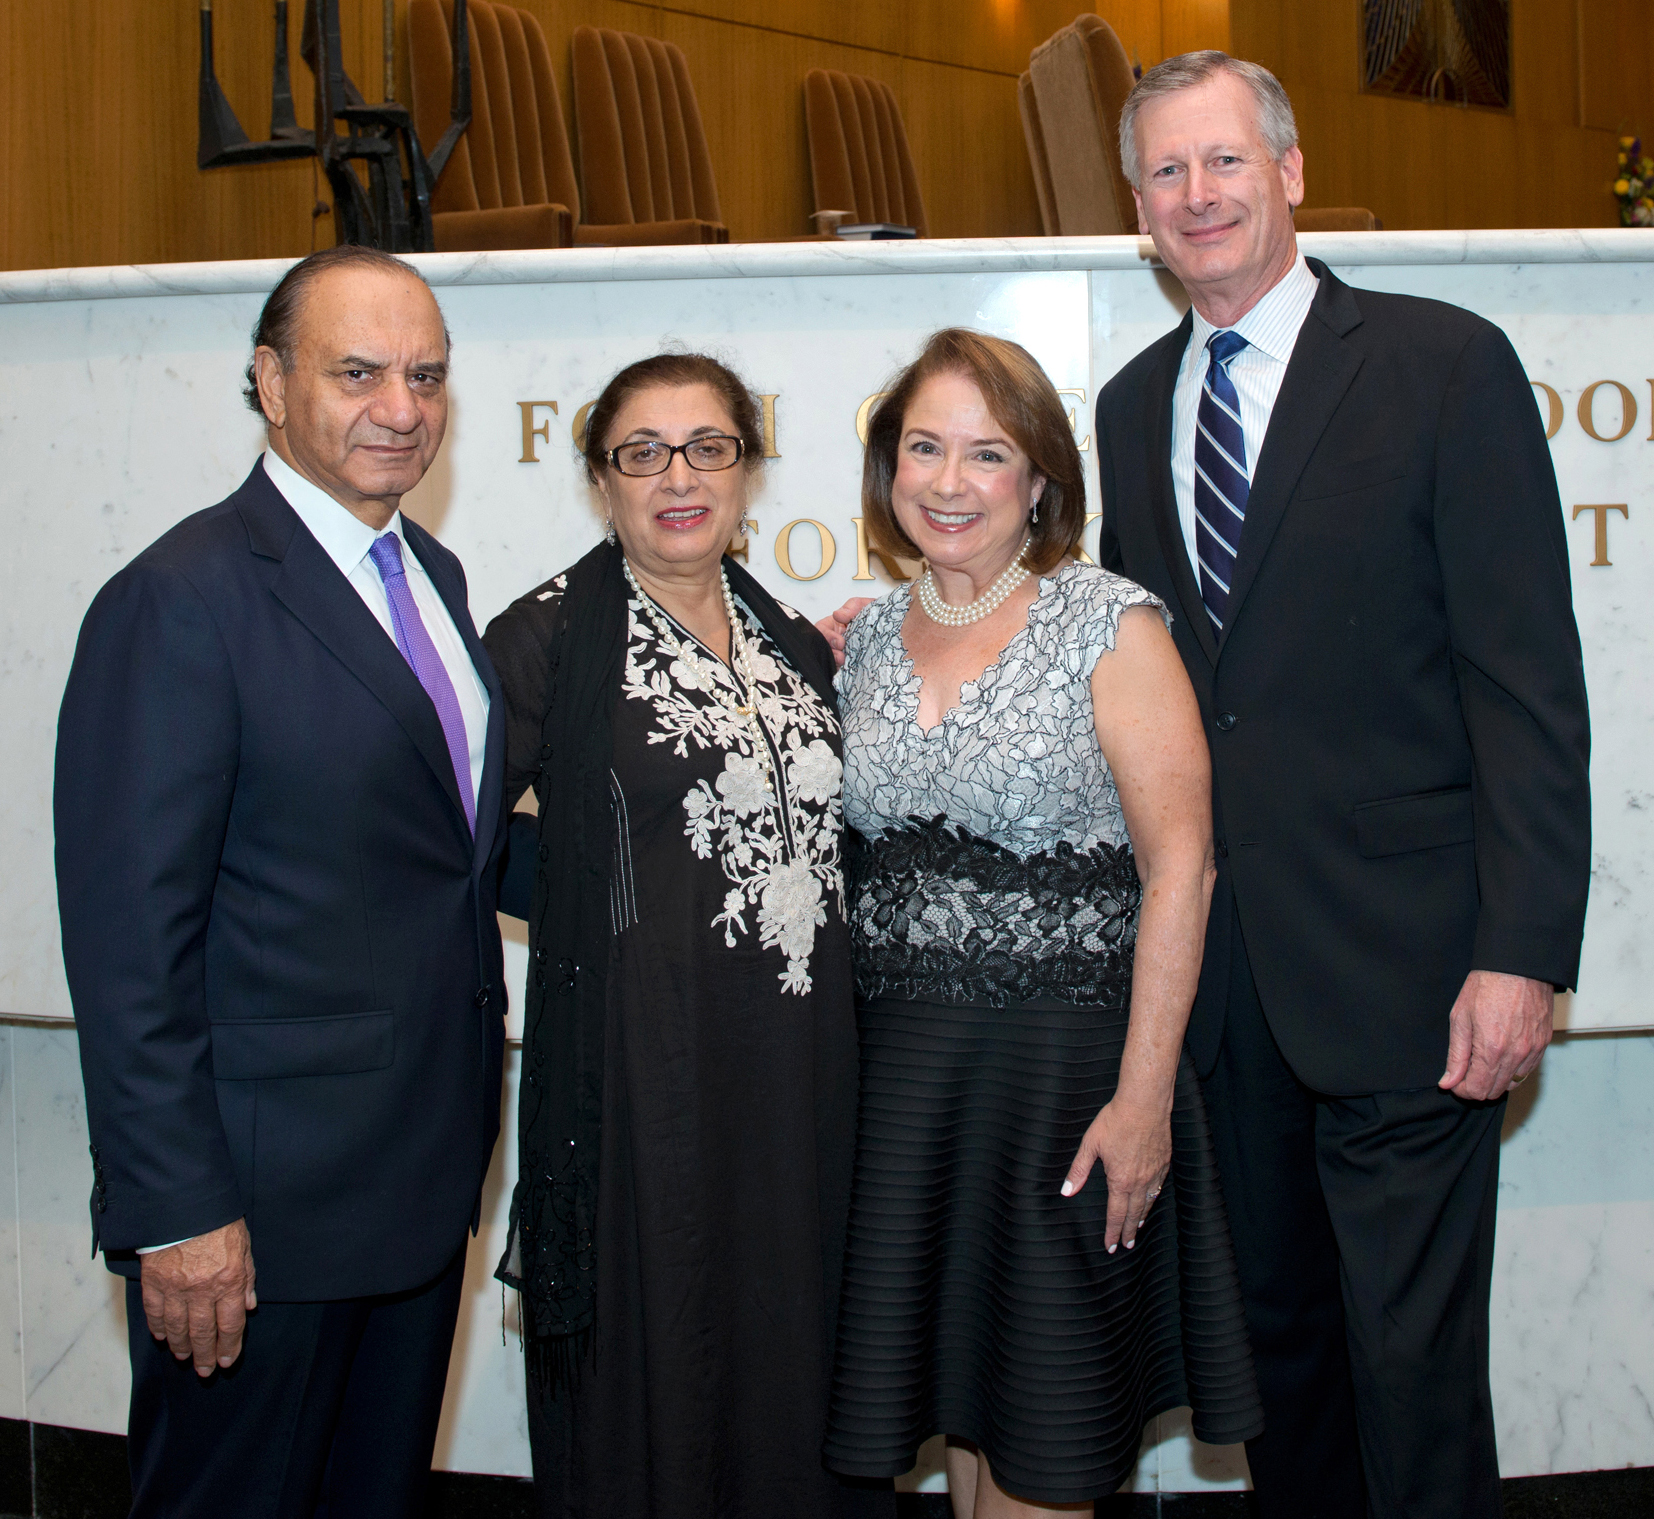 2016.05.13 Congregation Beth Israel-Rabbi Samuel Karff Leadership Award honoring Karen & Joseph Chesnick, Jr.jpg